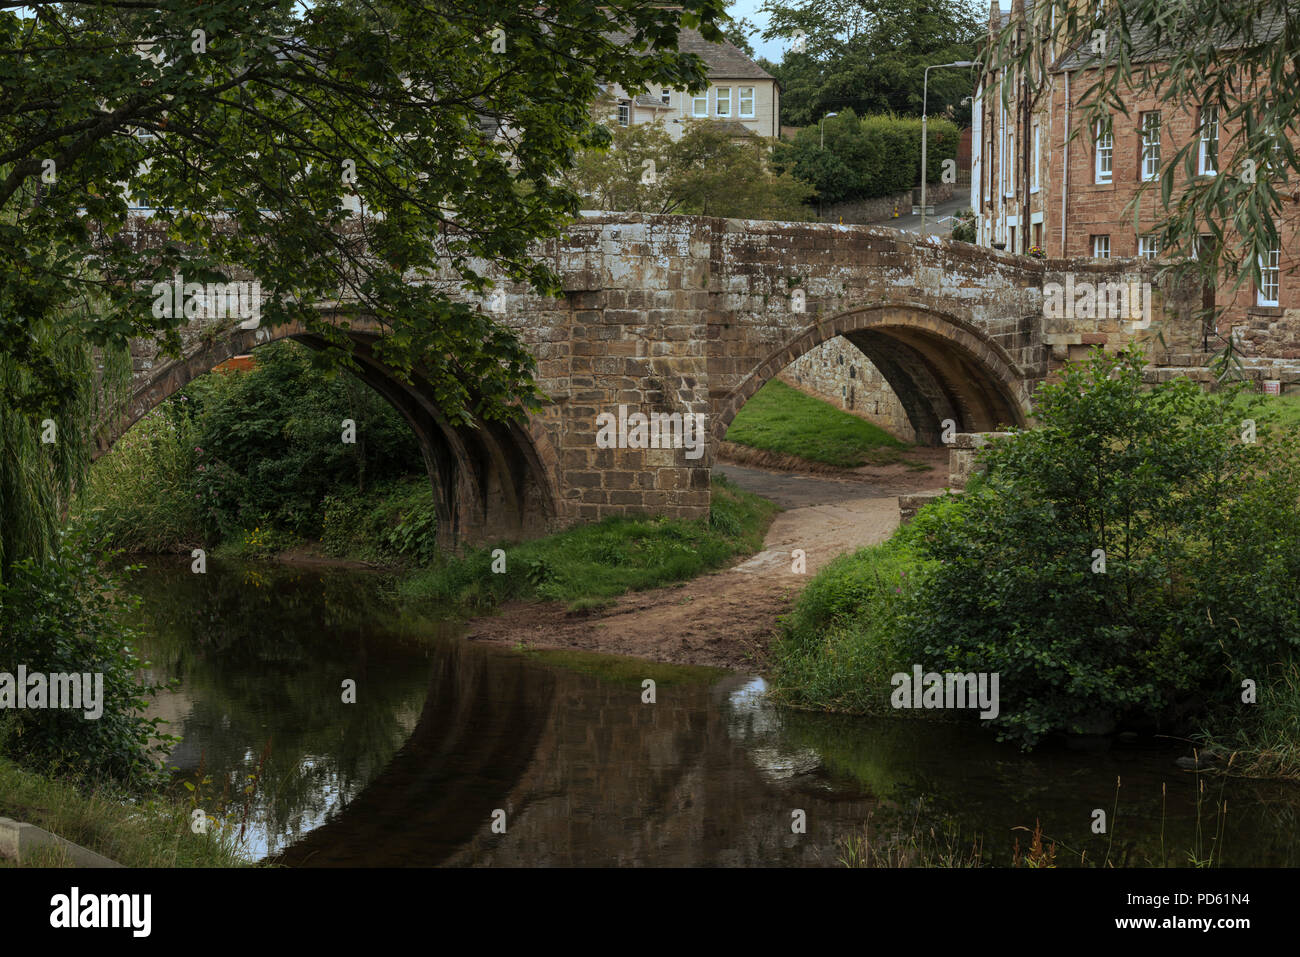 The Canongate bridge has carried people across the Jed Water into Jedburgh since the sixteenth century. - Stock Image